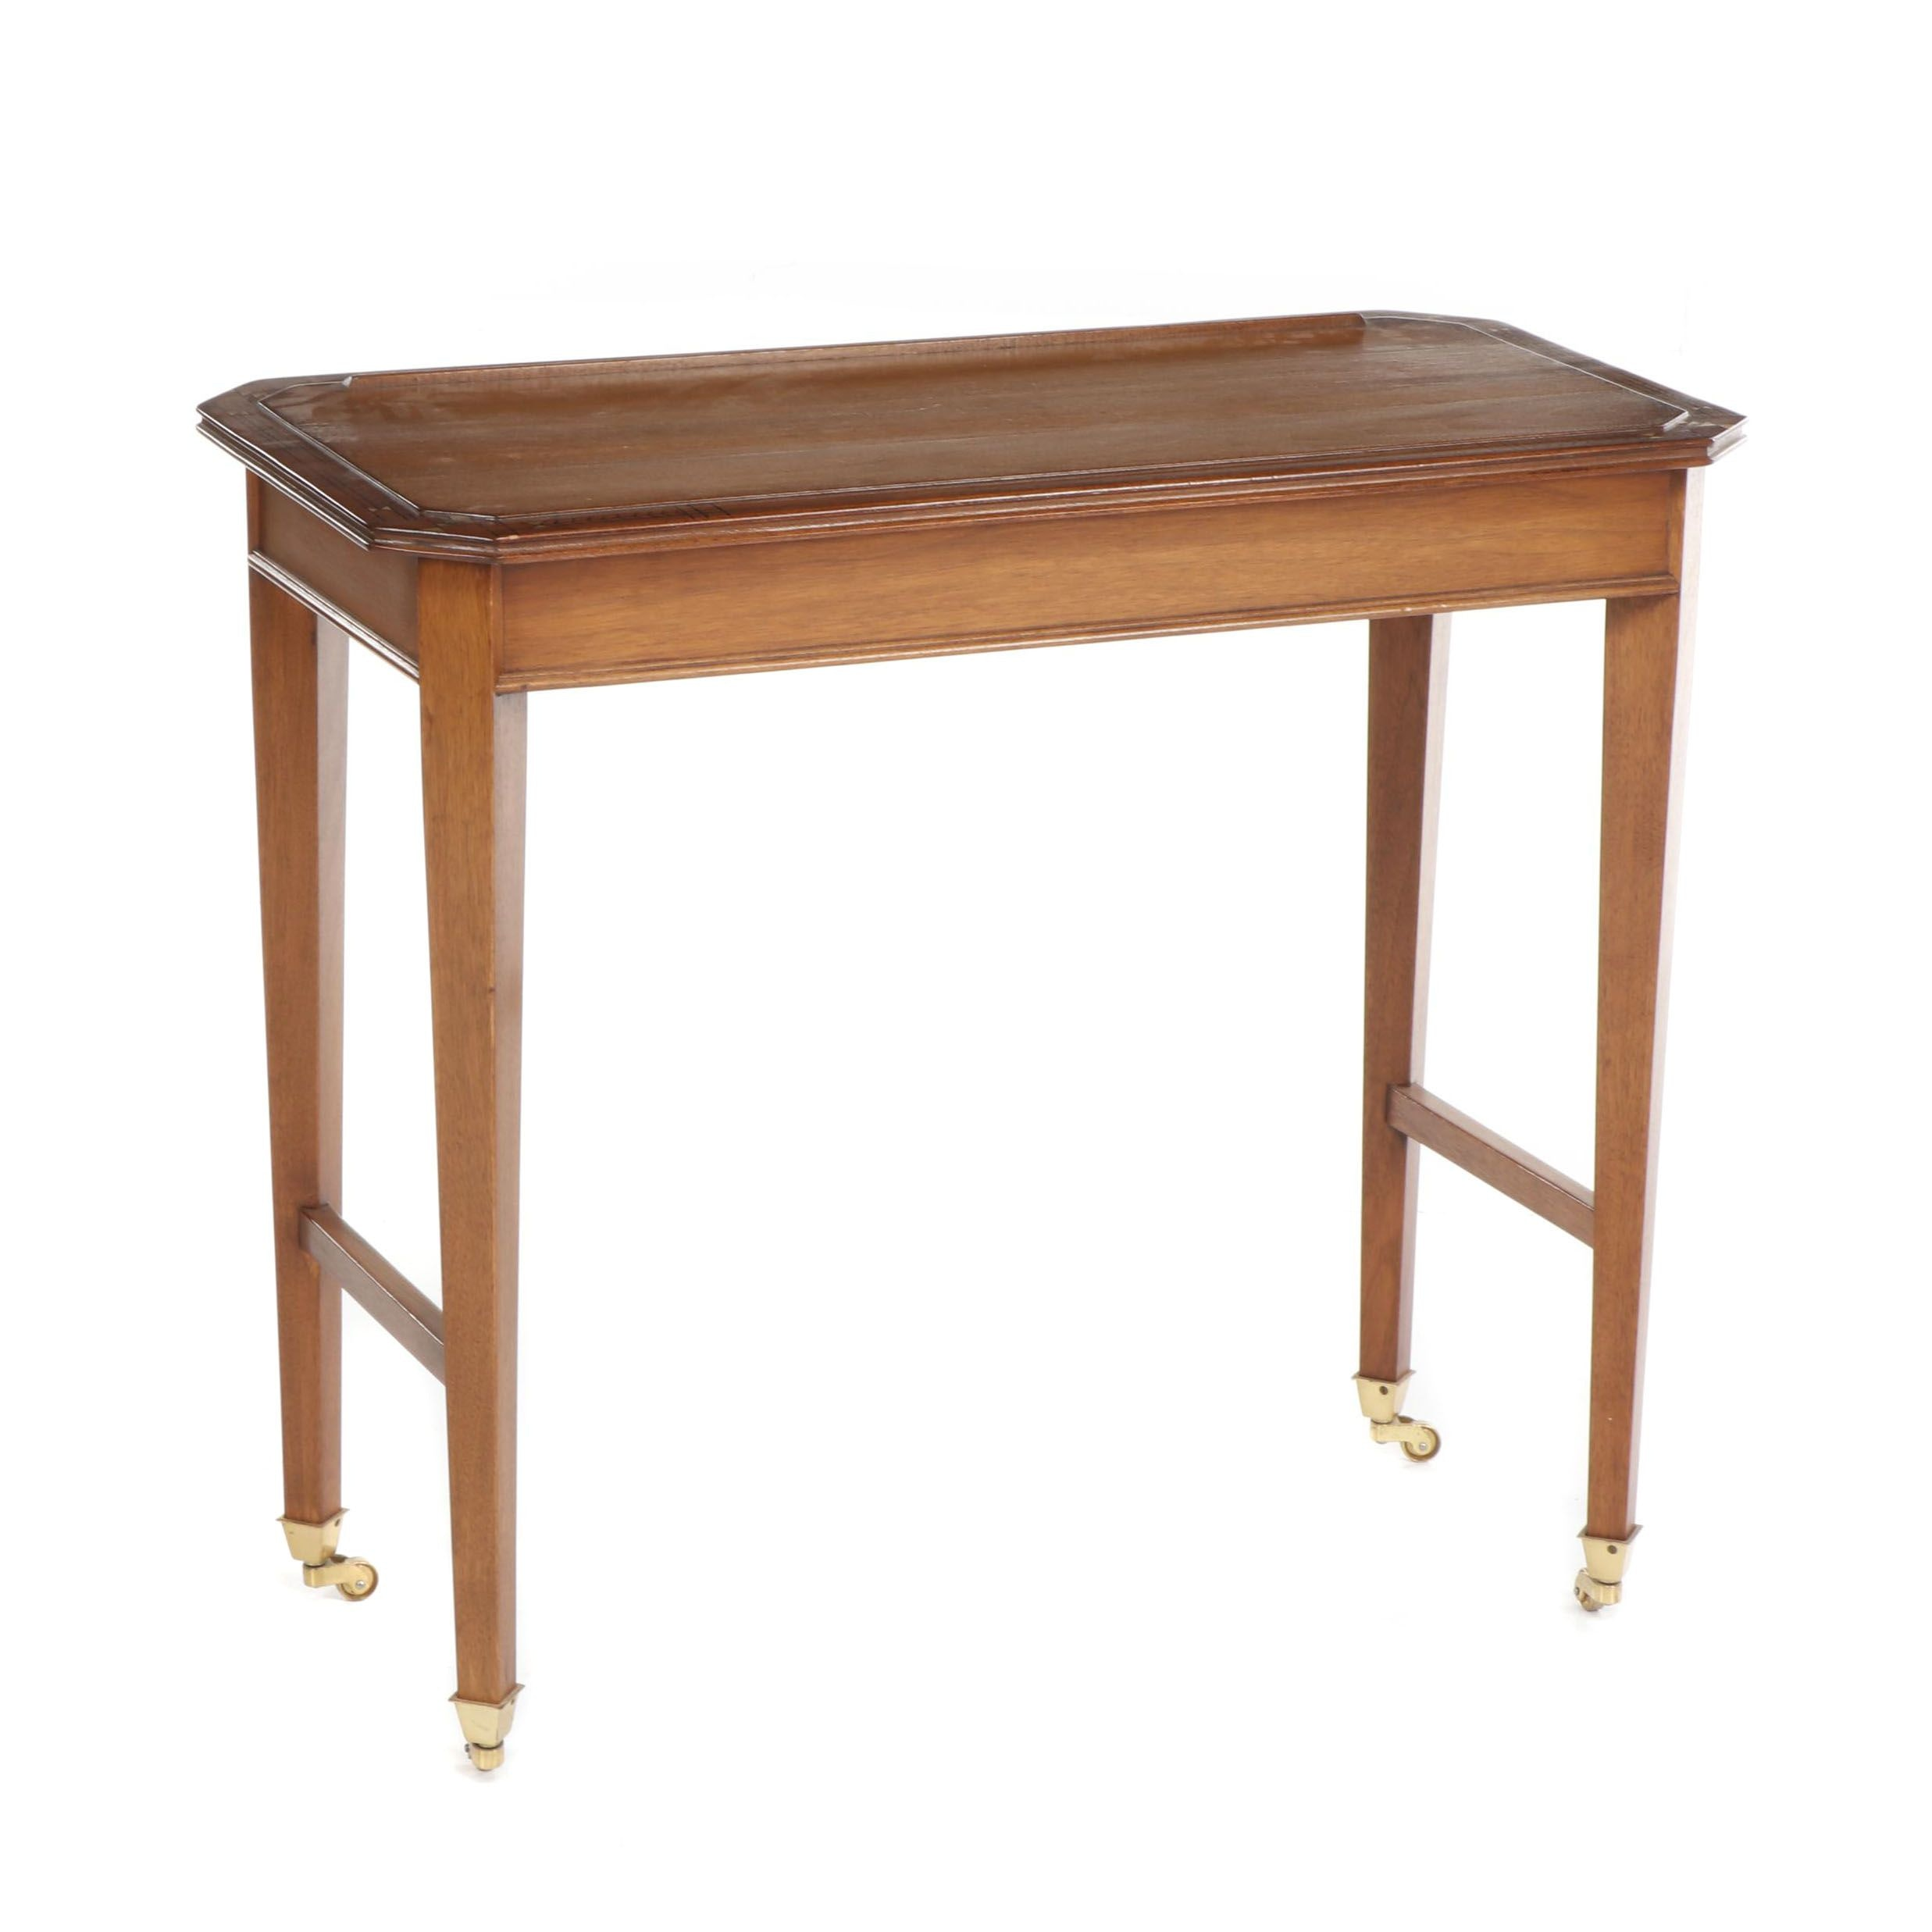 Drawing Desk with Adjustable Surface, Geometric Pattern Trim and Brass Casters